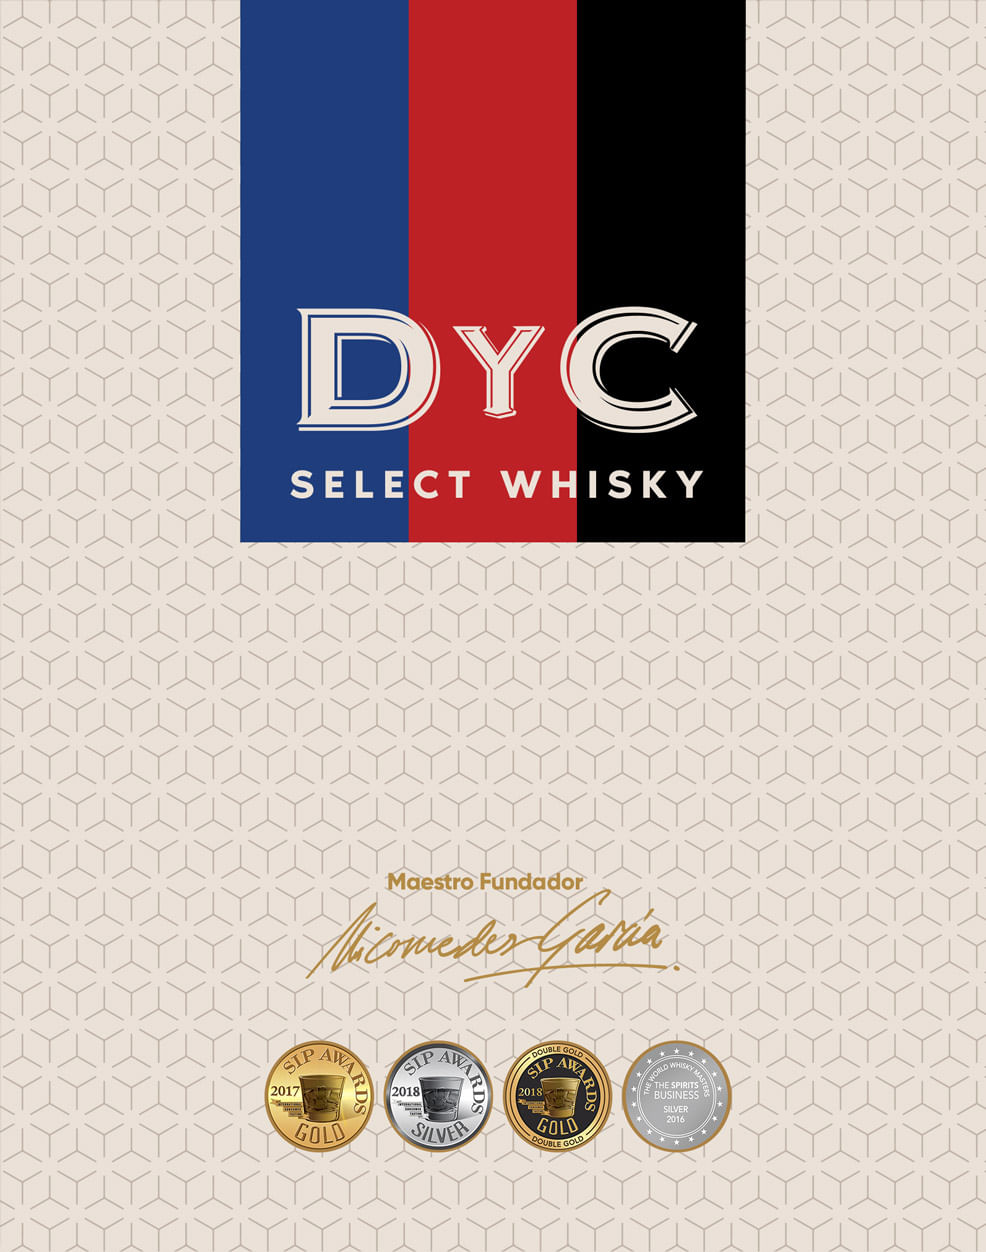 DYC whisky select